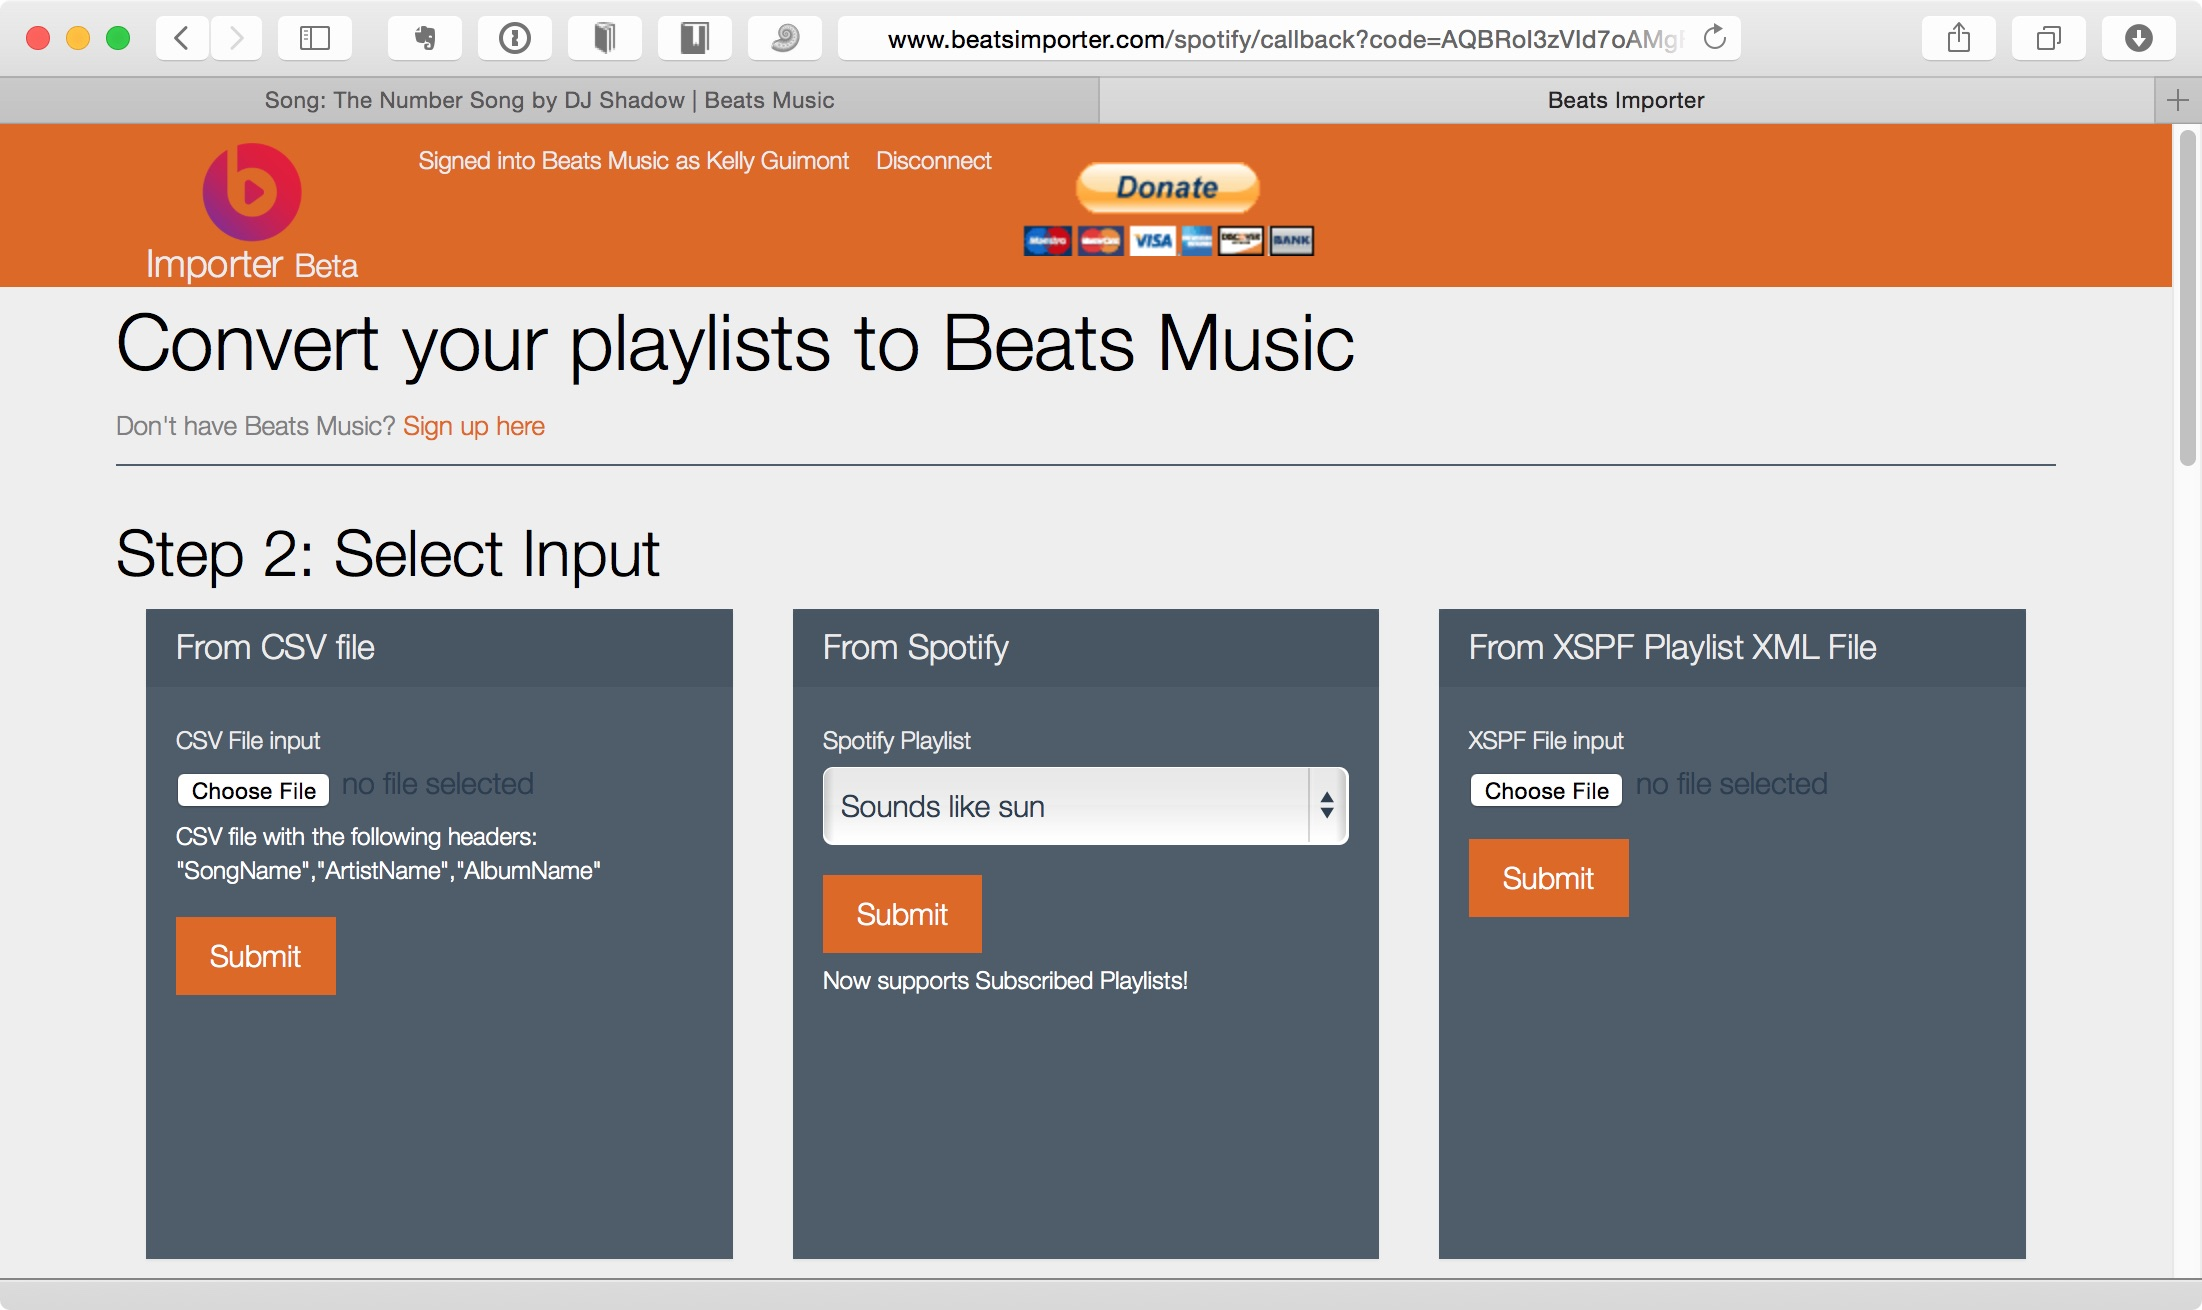 Beats Importer showing Spotify playlists to import